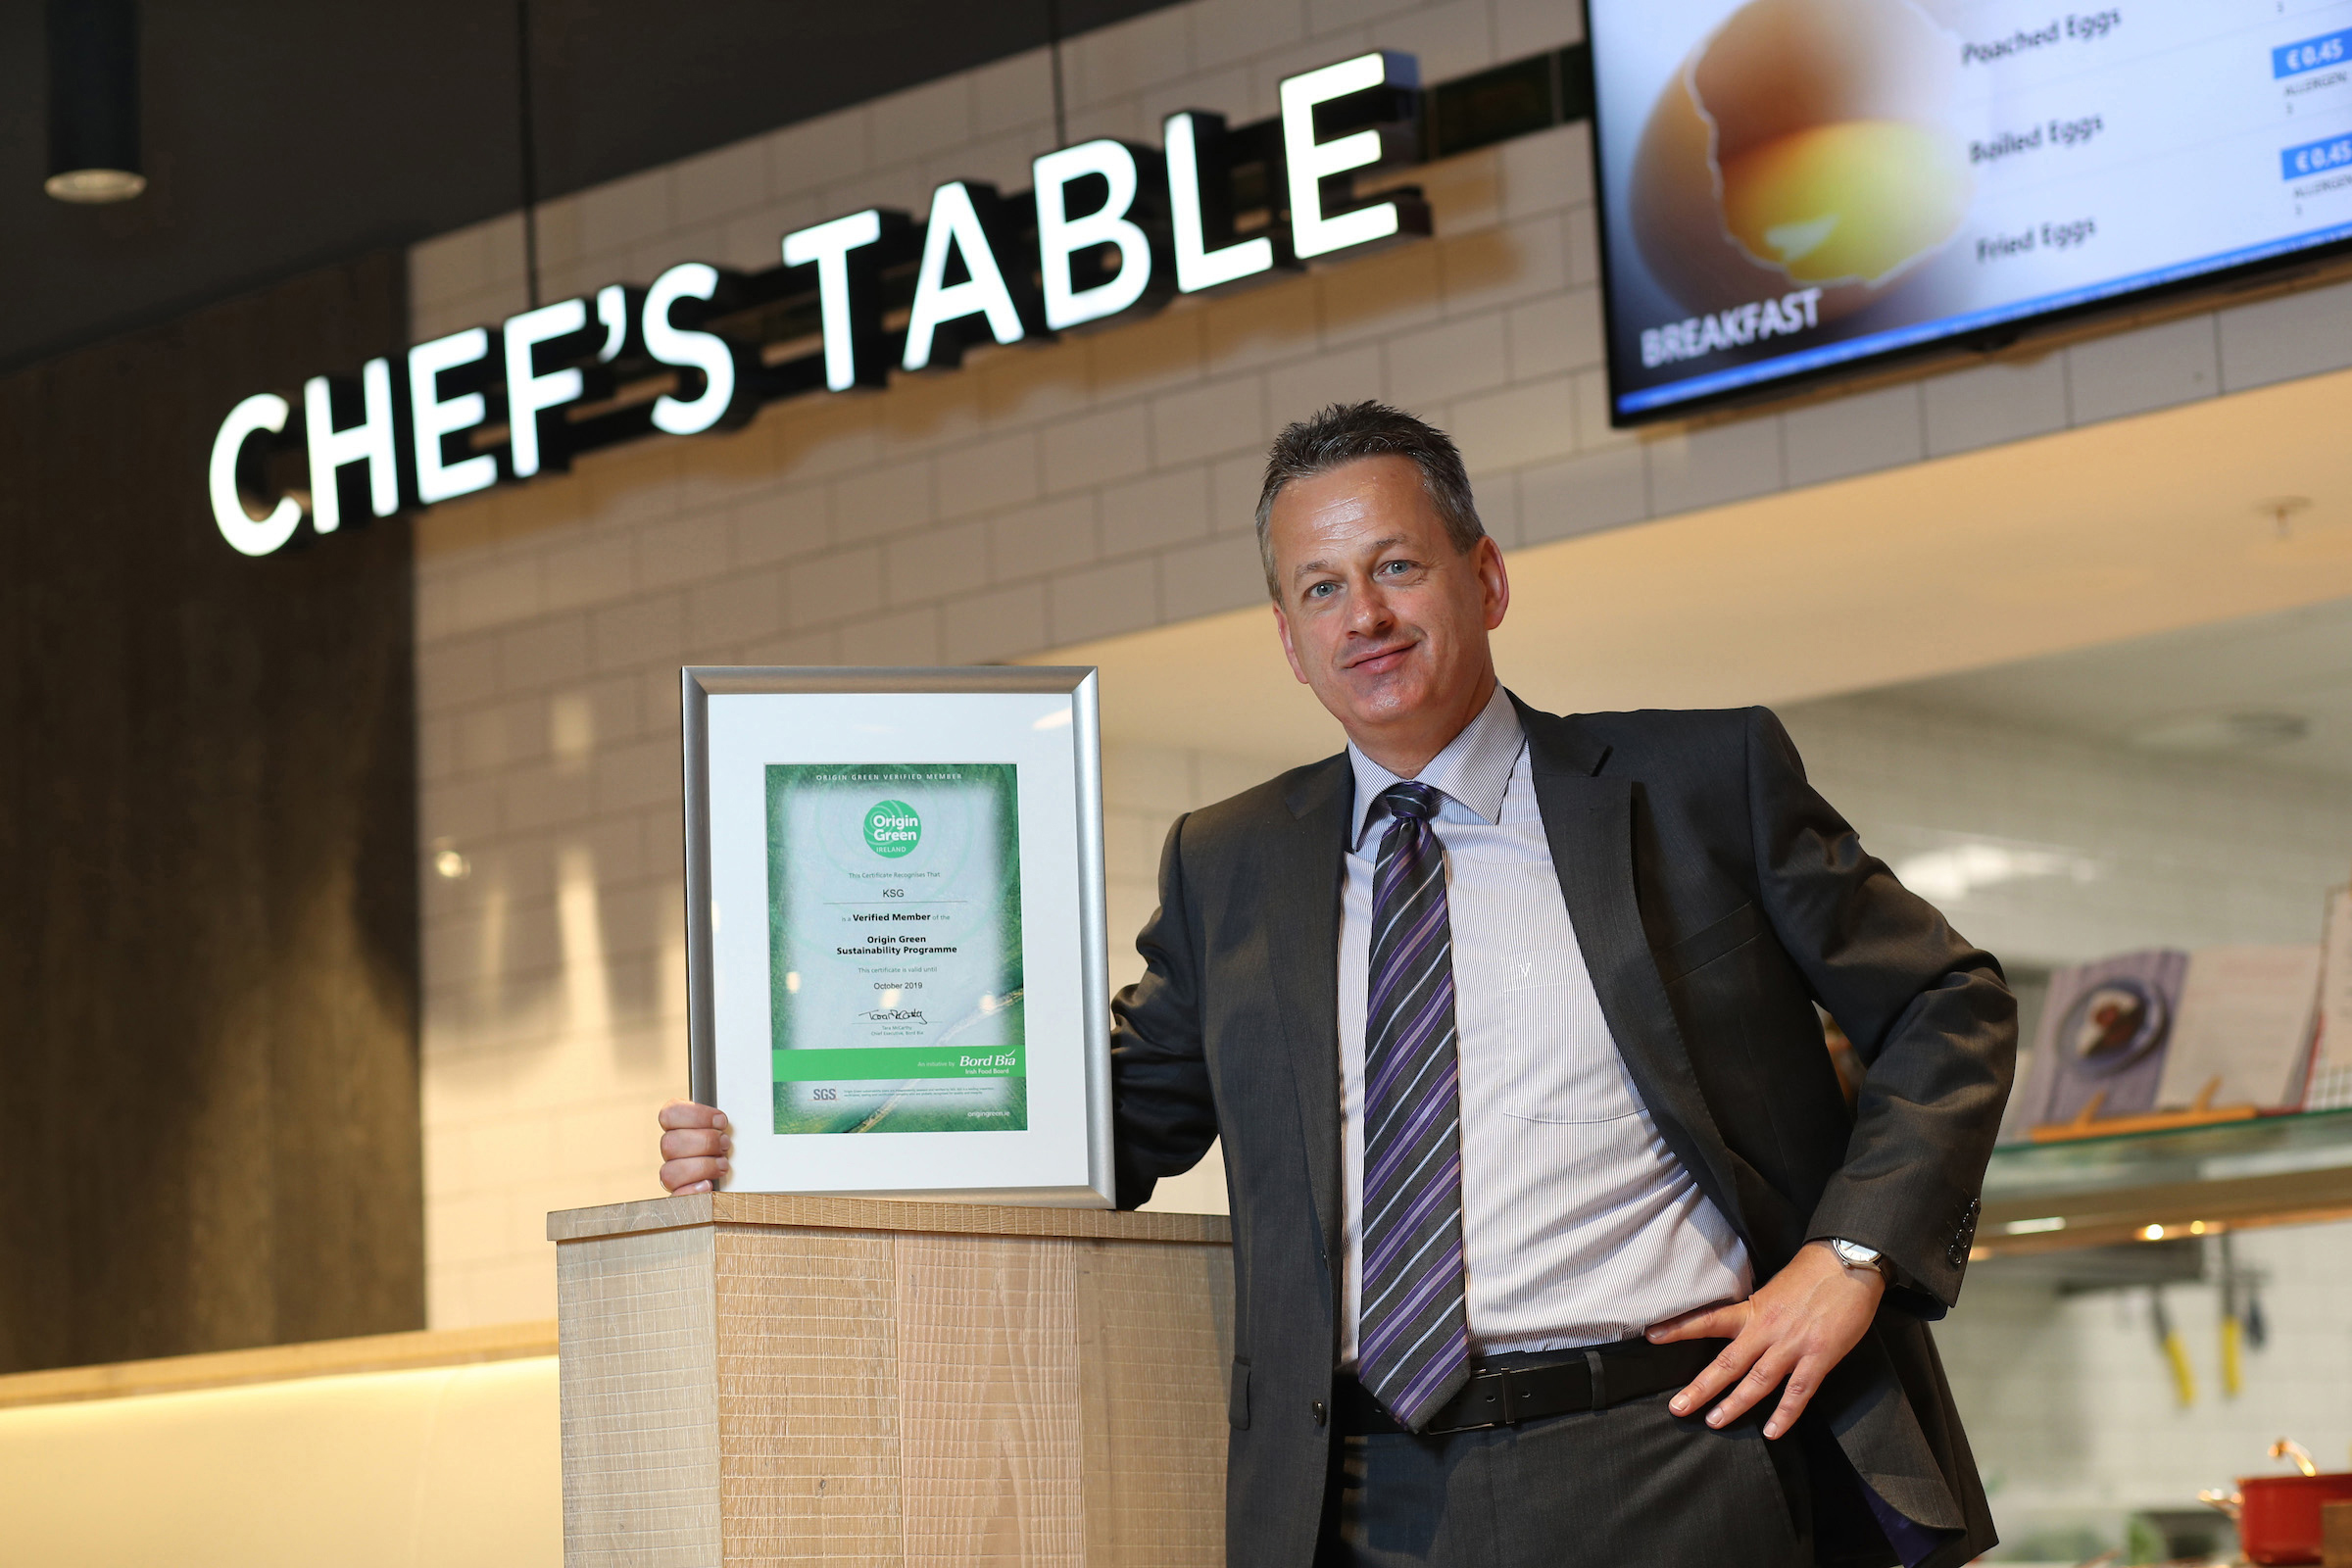 Michael Gleeson (CEO KSG Catering) with the Bord Bia Origin Green Certification at Microsoft One, Leopardstown, Co Dublin.  For further information please contact Mari O'Leary 01 6789888  marioleary@olearypr.ie